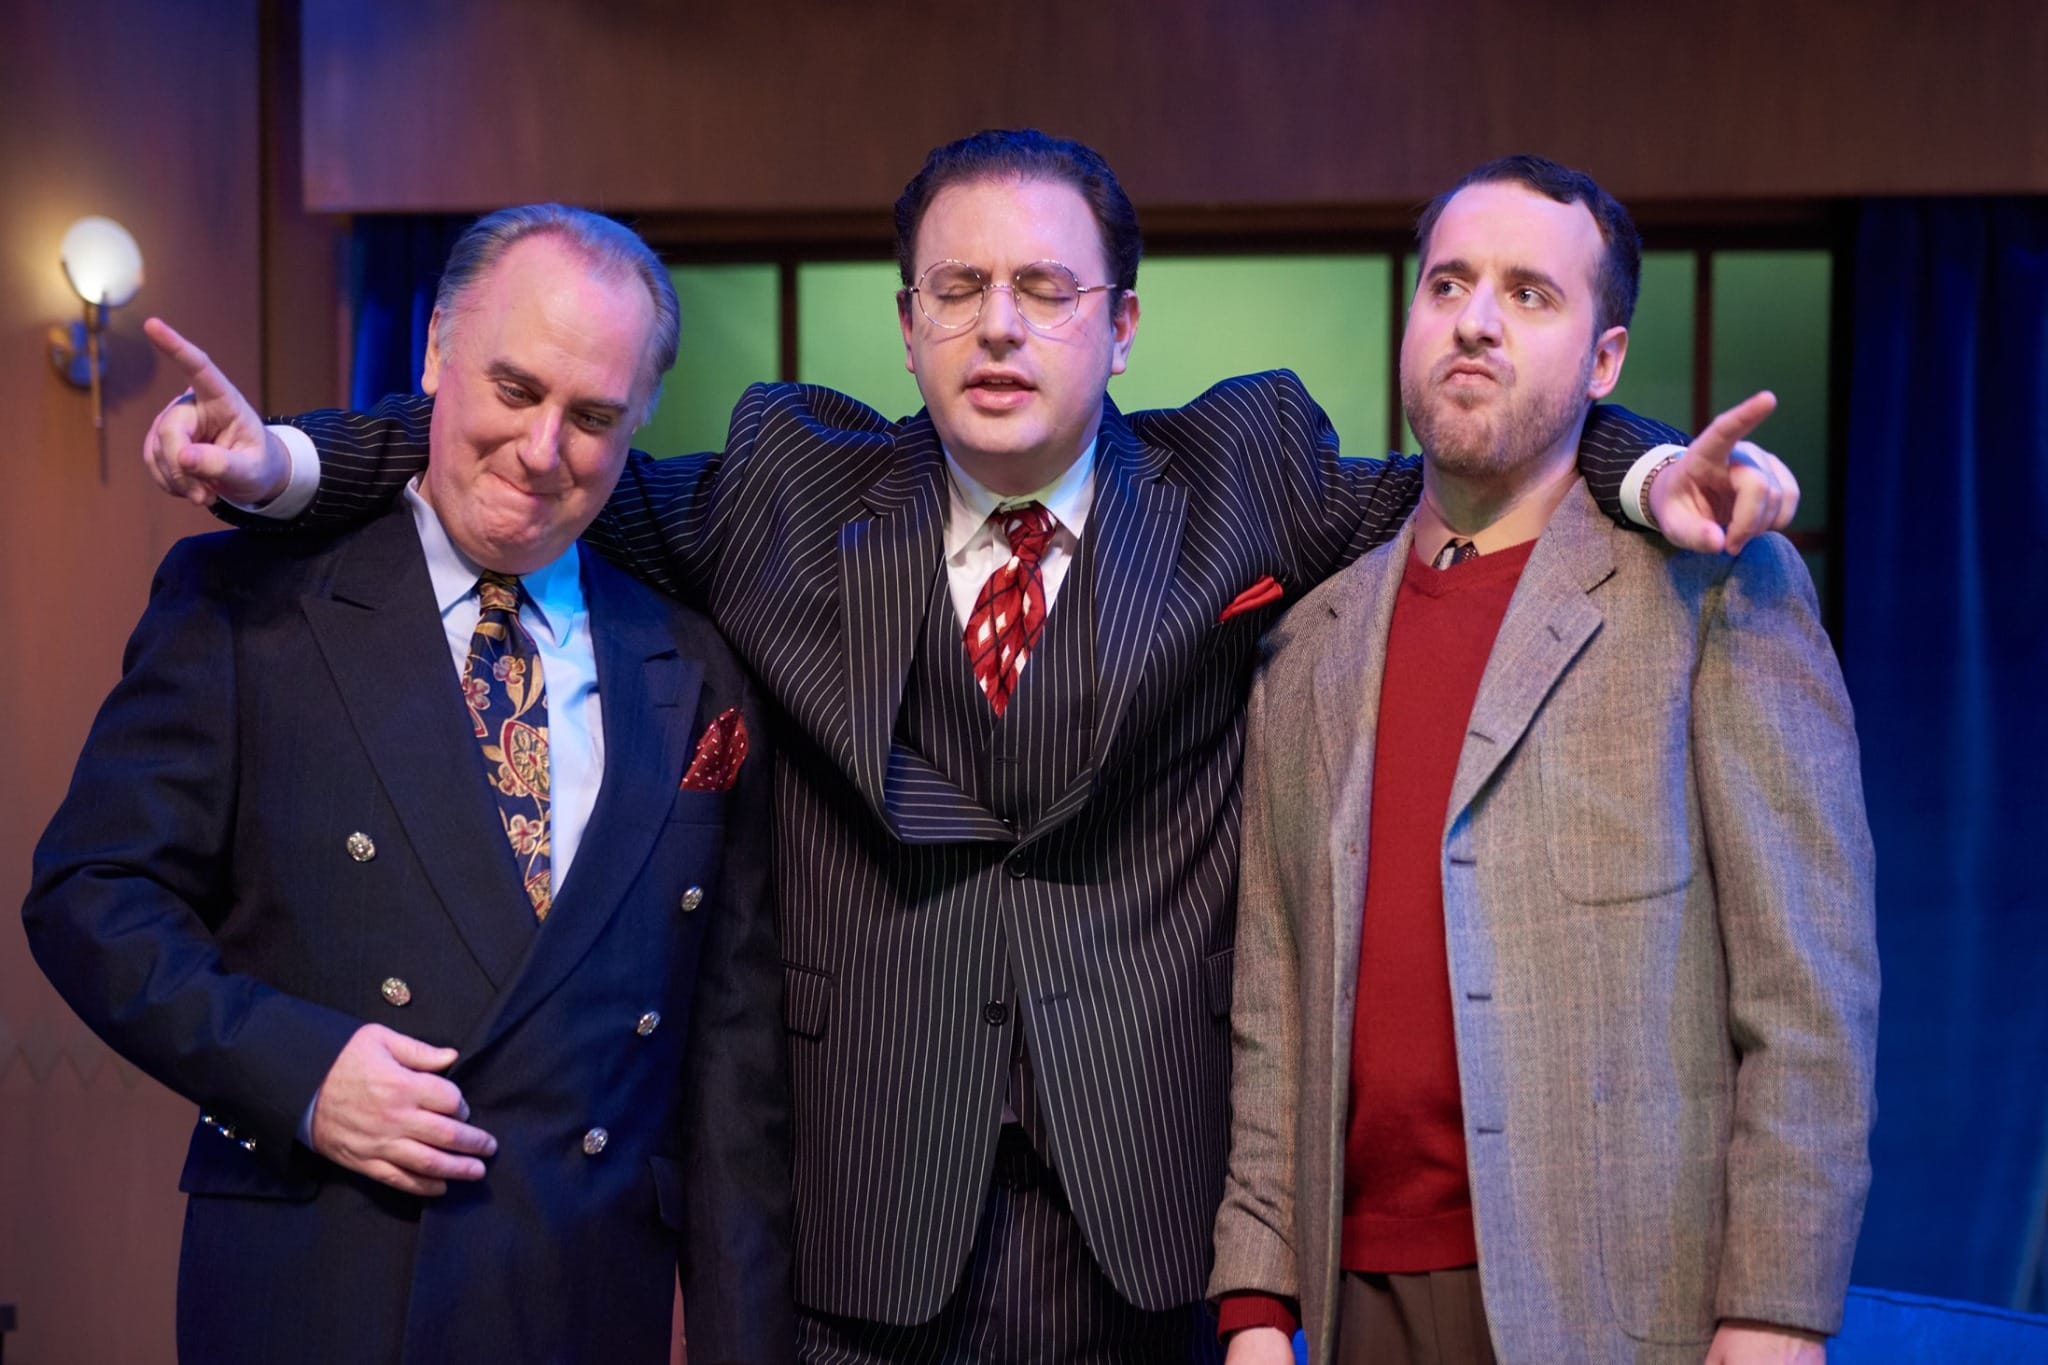 Michael J. Fisher (Victor Fleming), Griffin Voltmann (David O. Selznick), and J.T. Spivy (Ben Hecht) in 'Moonlight and Magnolias' at The Little Theatre of Alexandria. Photo by Brian Knapp.